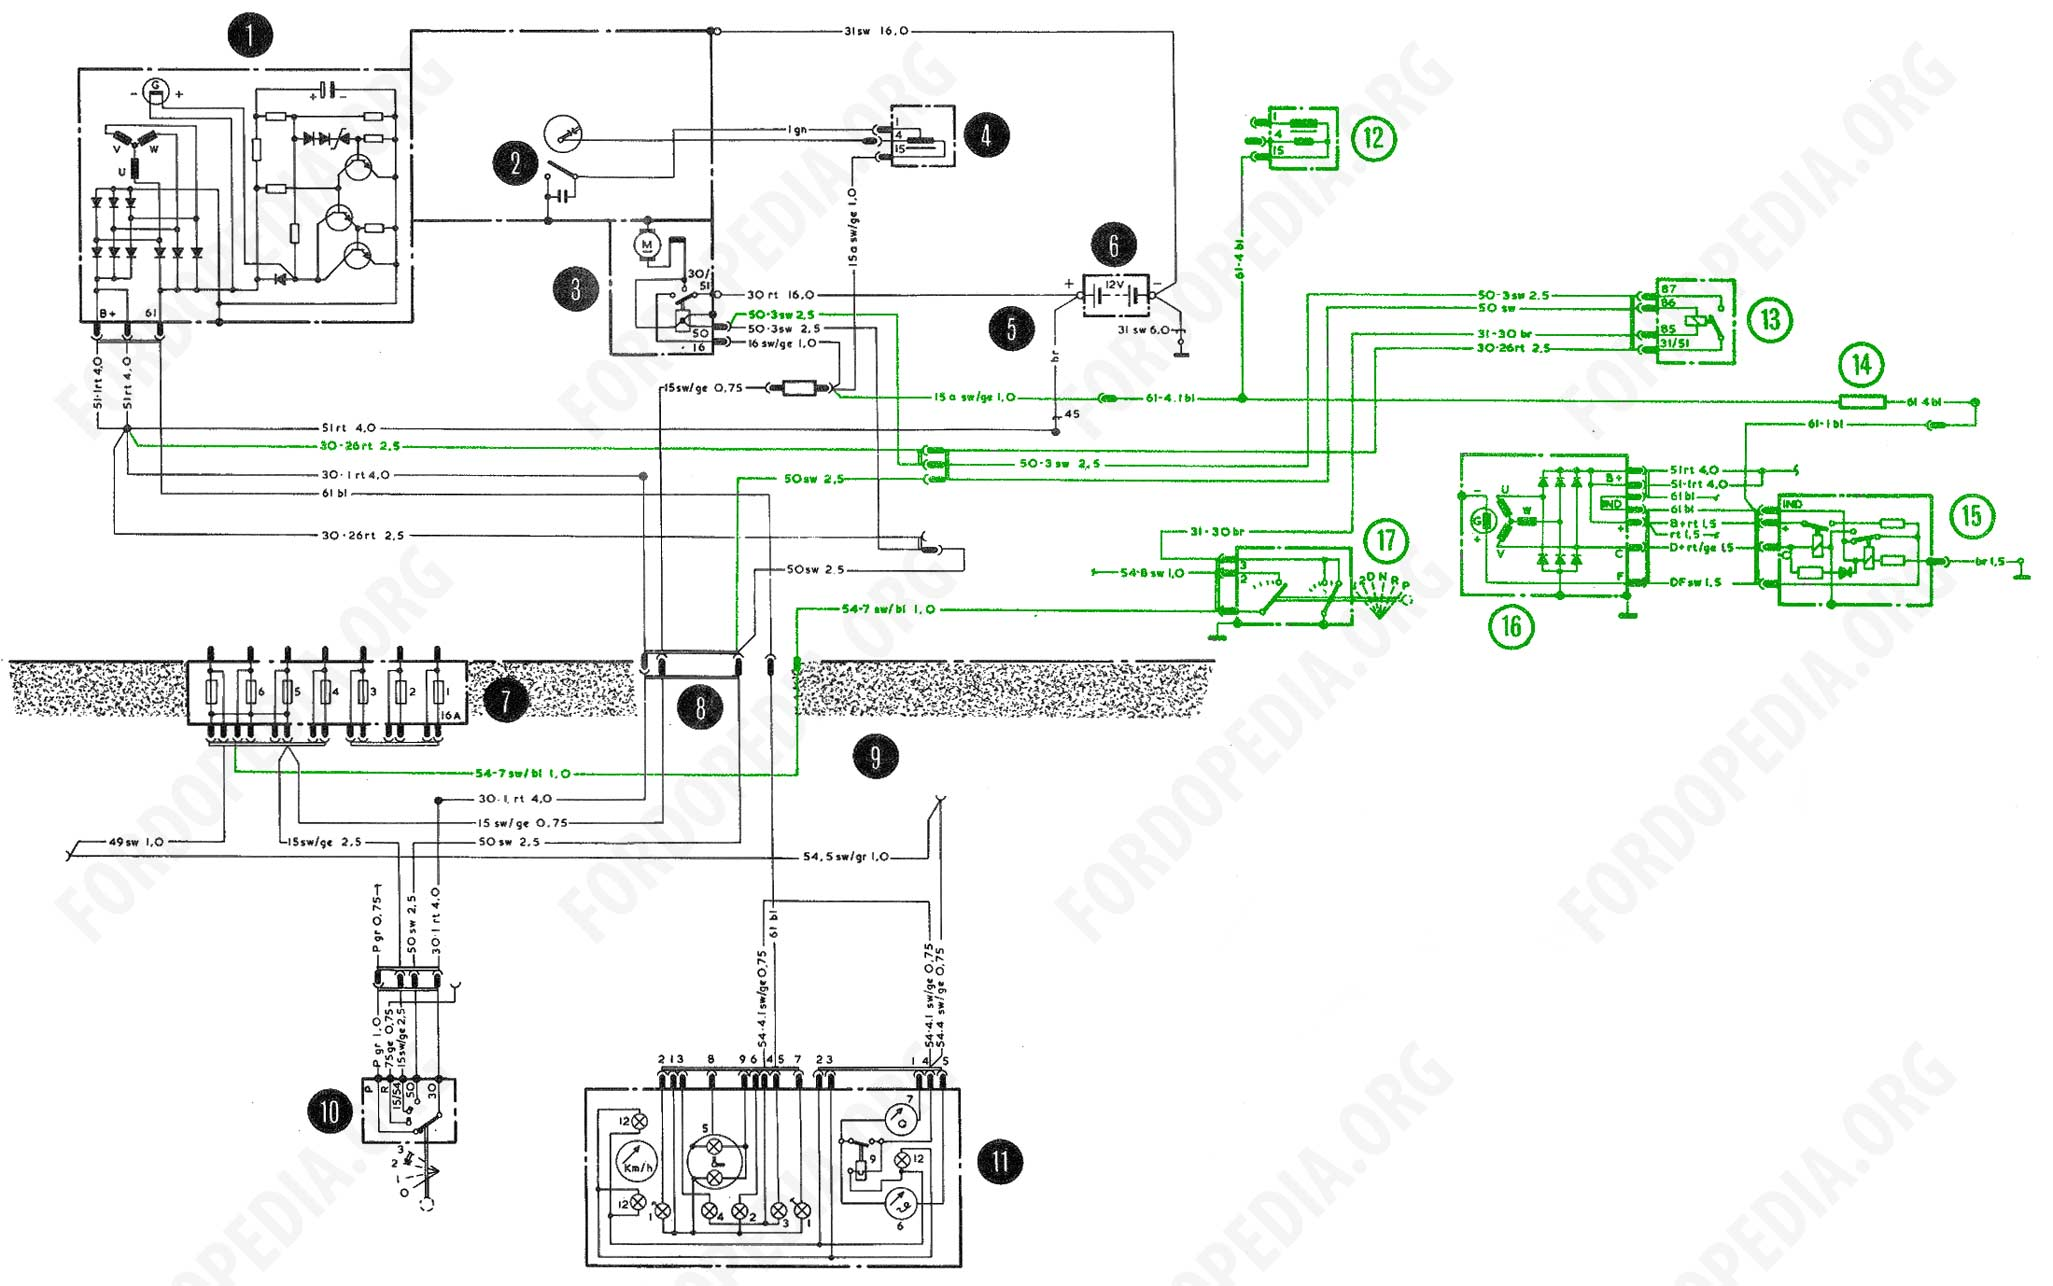 download full size image 2056x1283 220 kb wiring diagrams taunus tc2 cortina mk4 base version l version gl